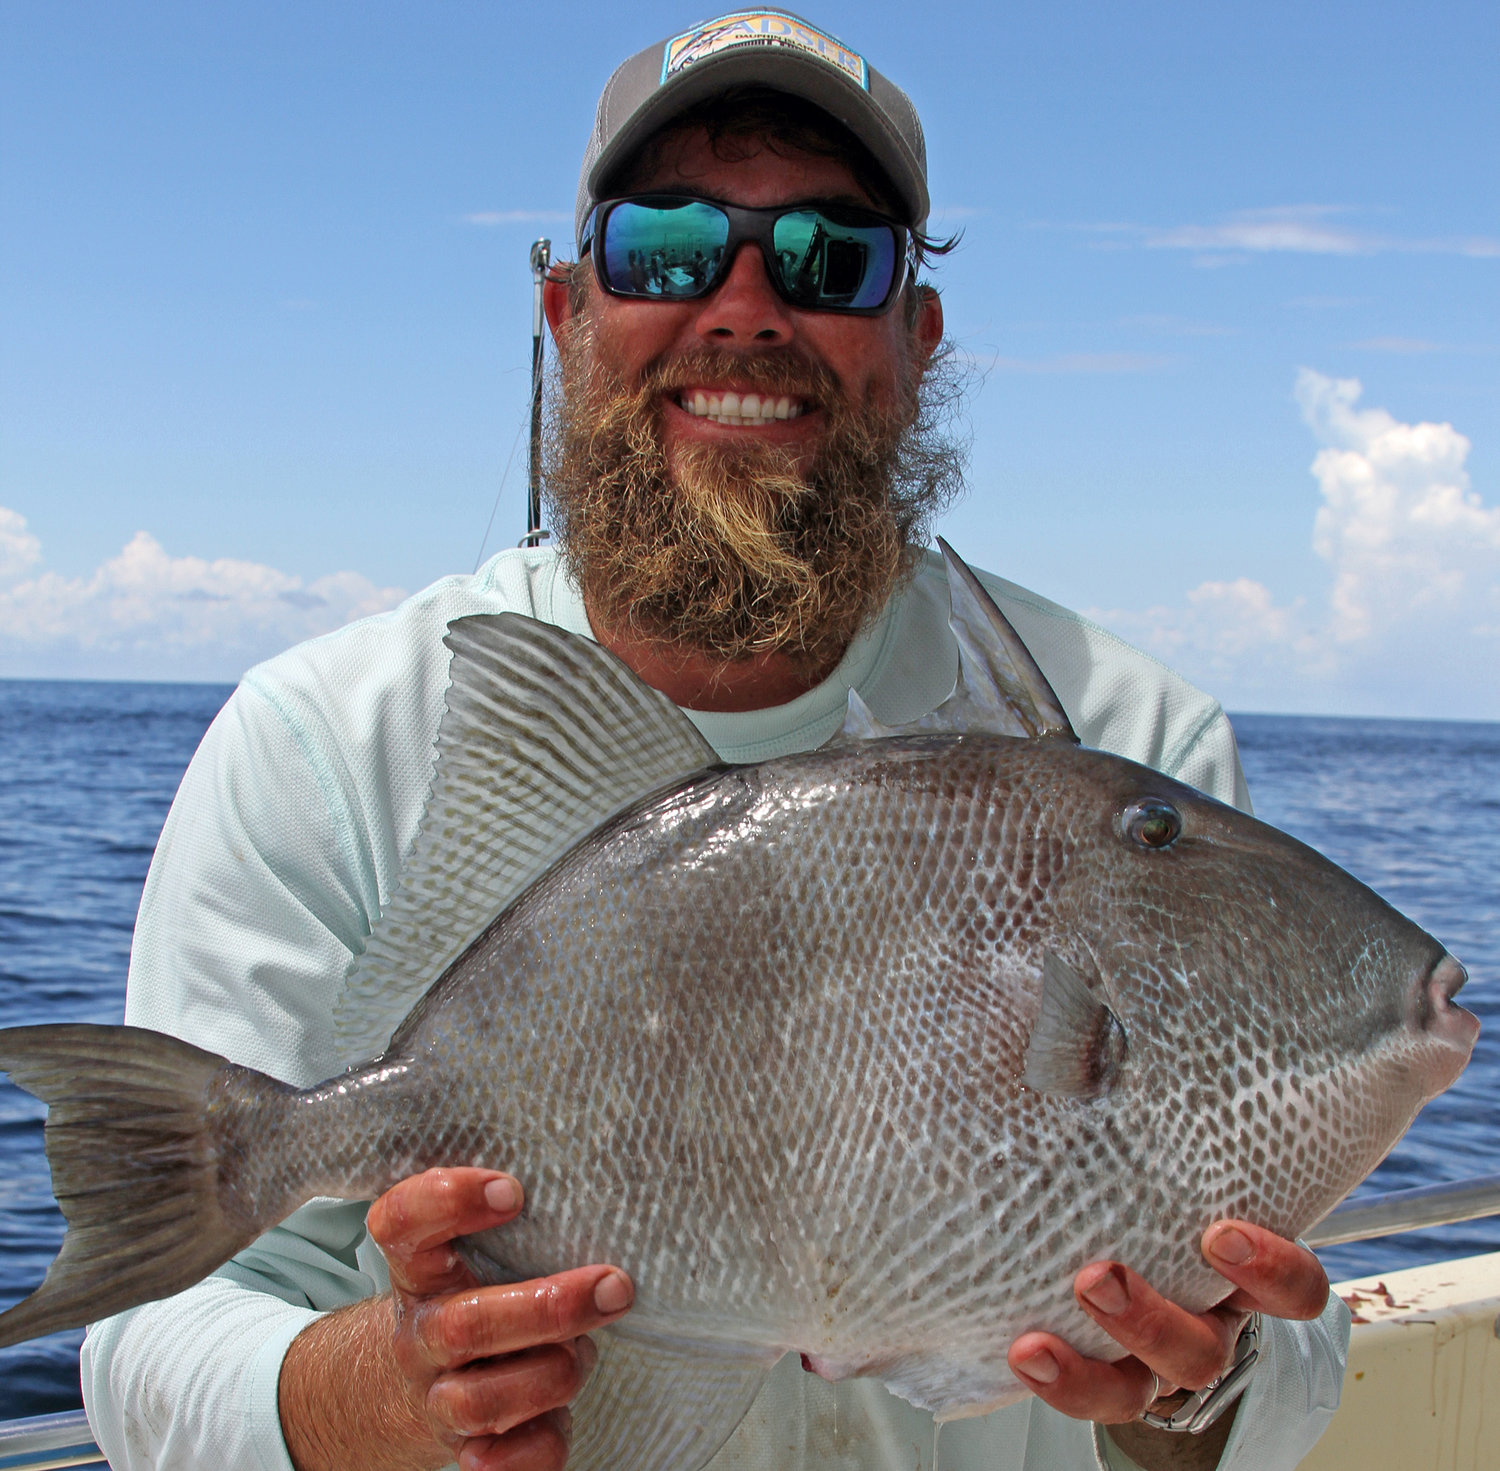 Capt. Richard Rutland shows off a huge gray triggerfish that was hooked in the Alabama artificial reef zone.